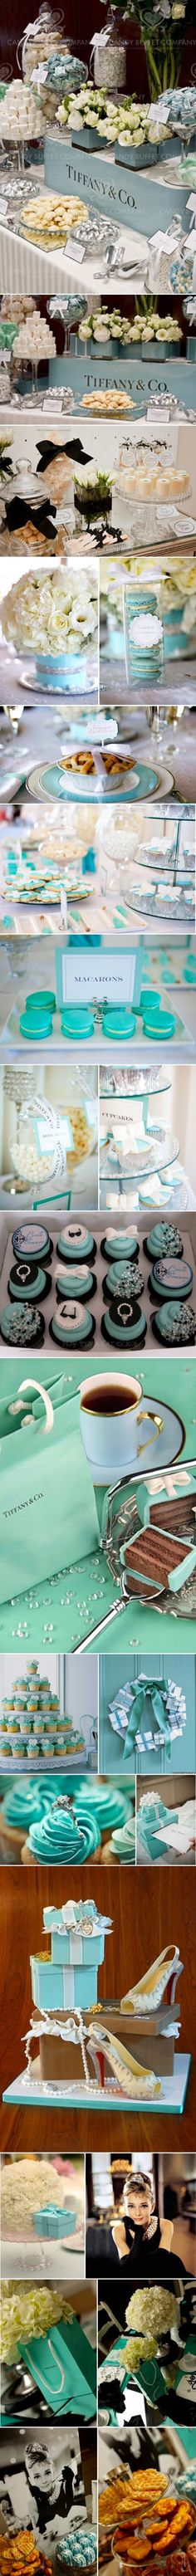 Tiffany & Co. Theme